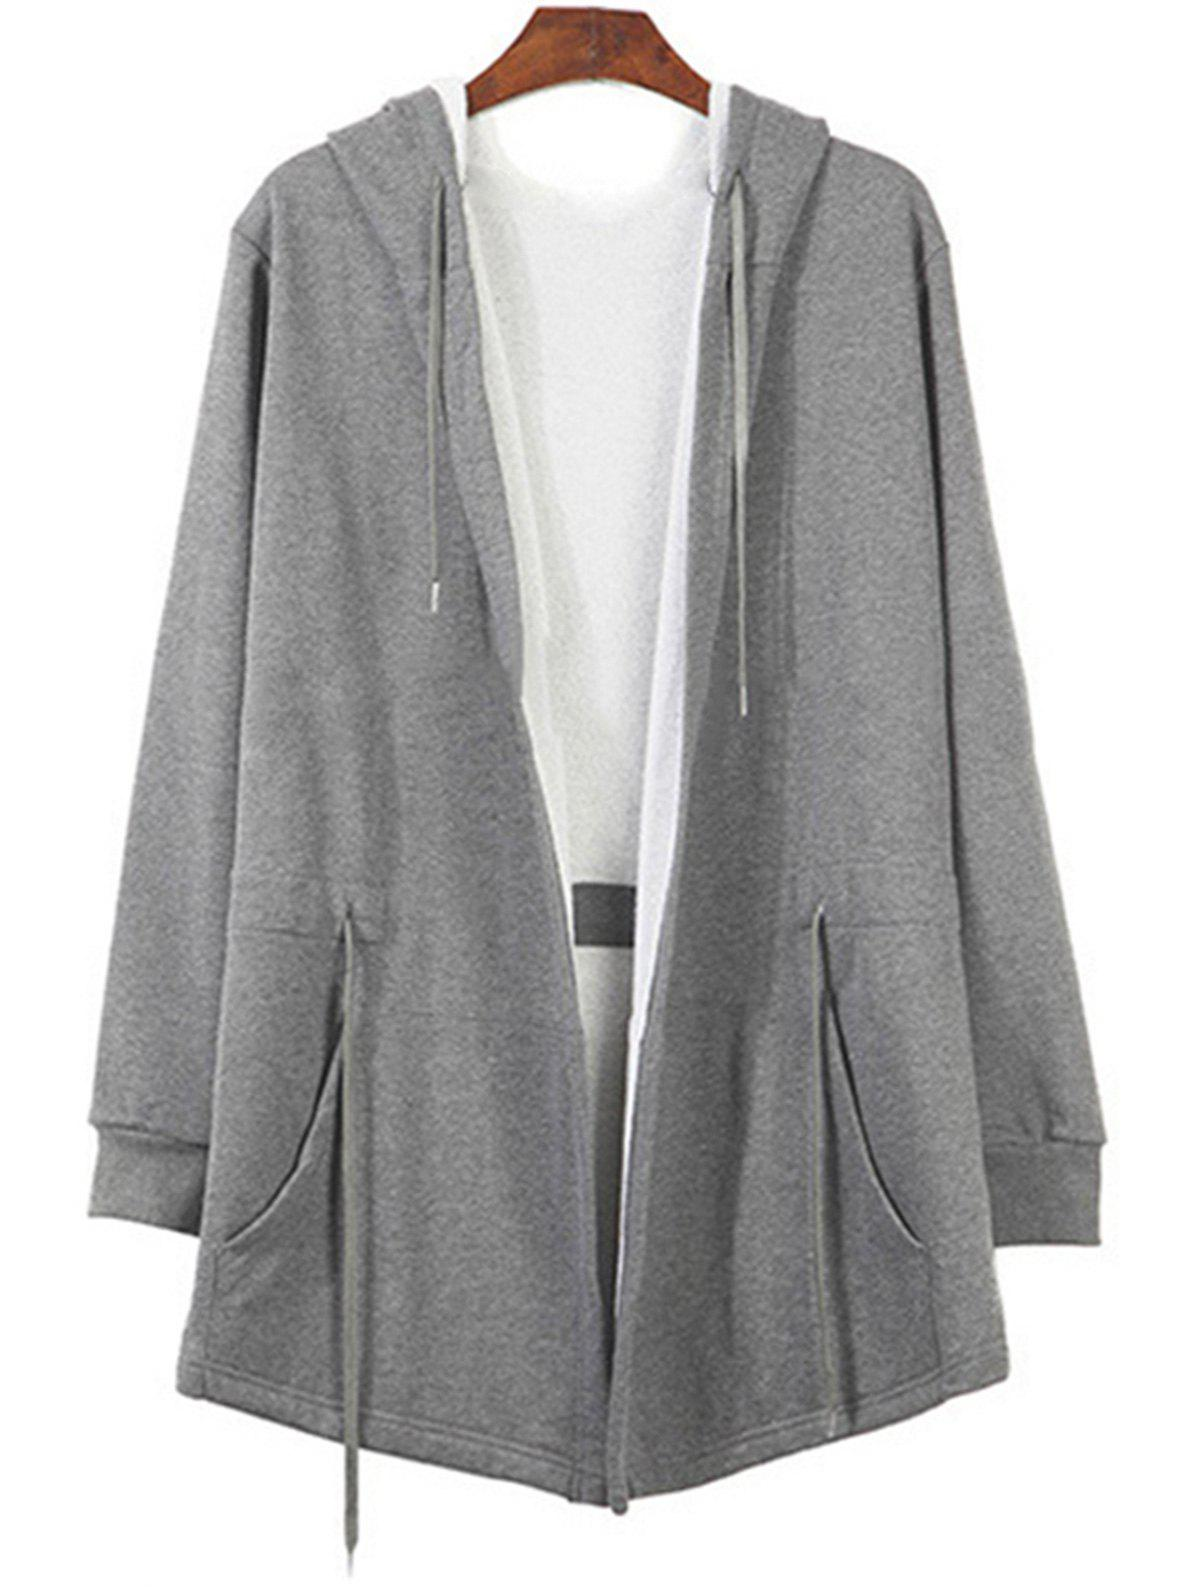 Drawstring Open Cape Long Hoodie - GRAY XL